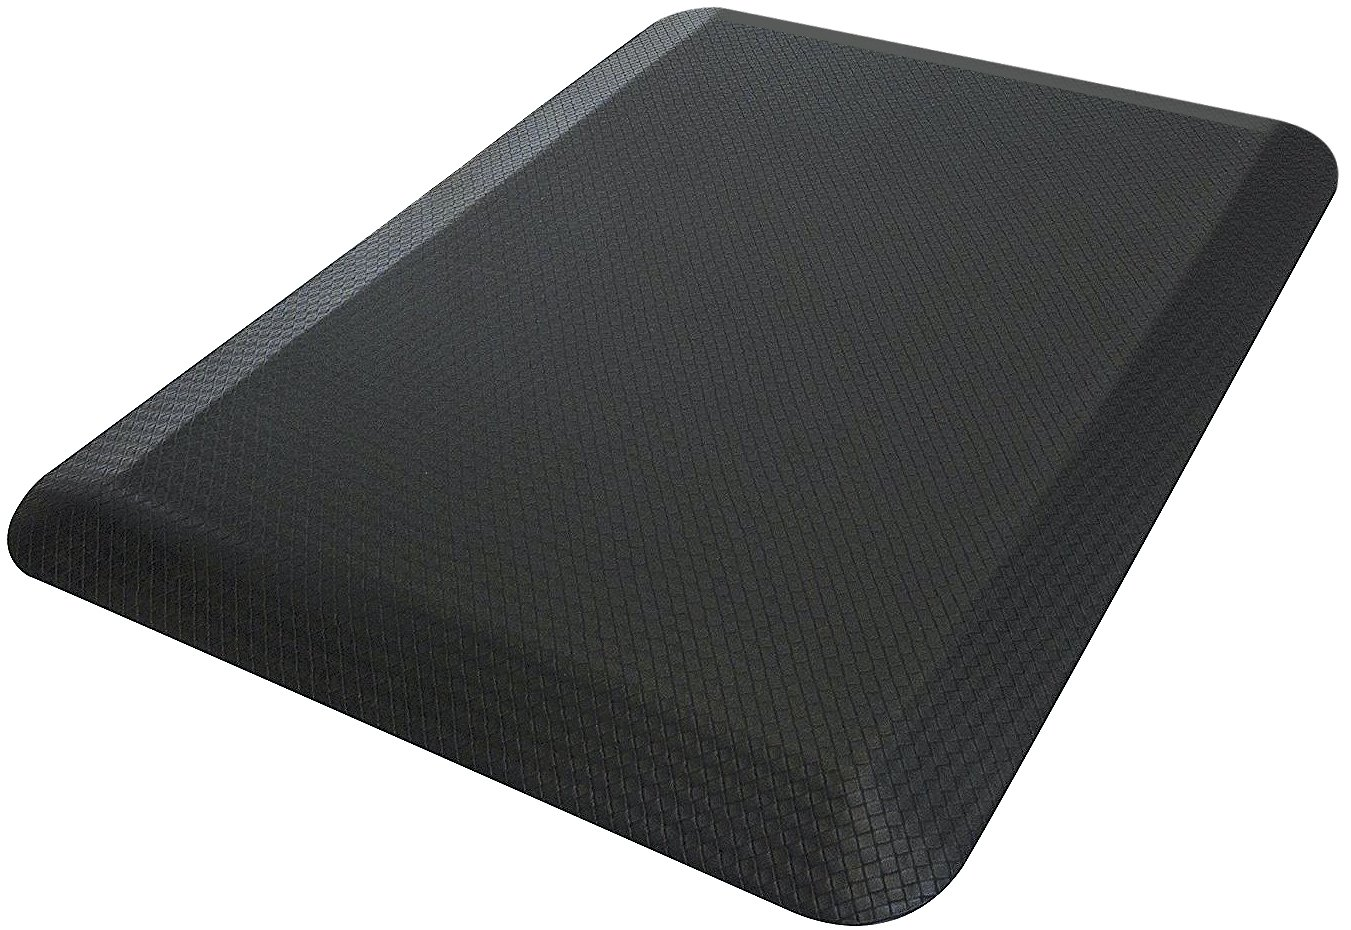 Sorbus Anti Fatigue Mat - Comfort Standing Mat Kitchen Rug - Perfect for Kitchen and Standing Office Desk (24 in x 18 in, Black) MAT-STNDGL-BLKA